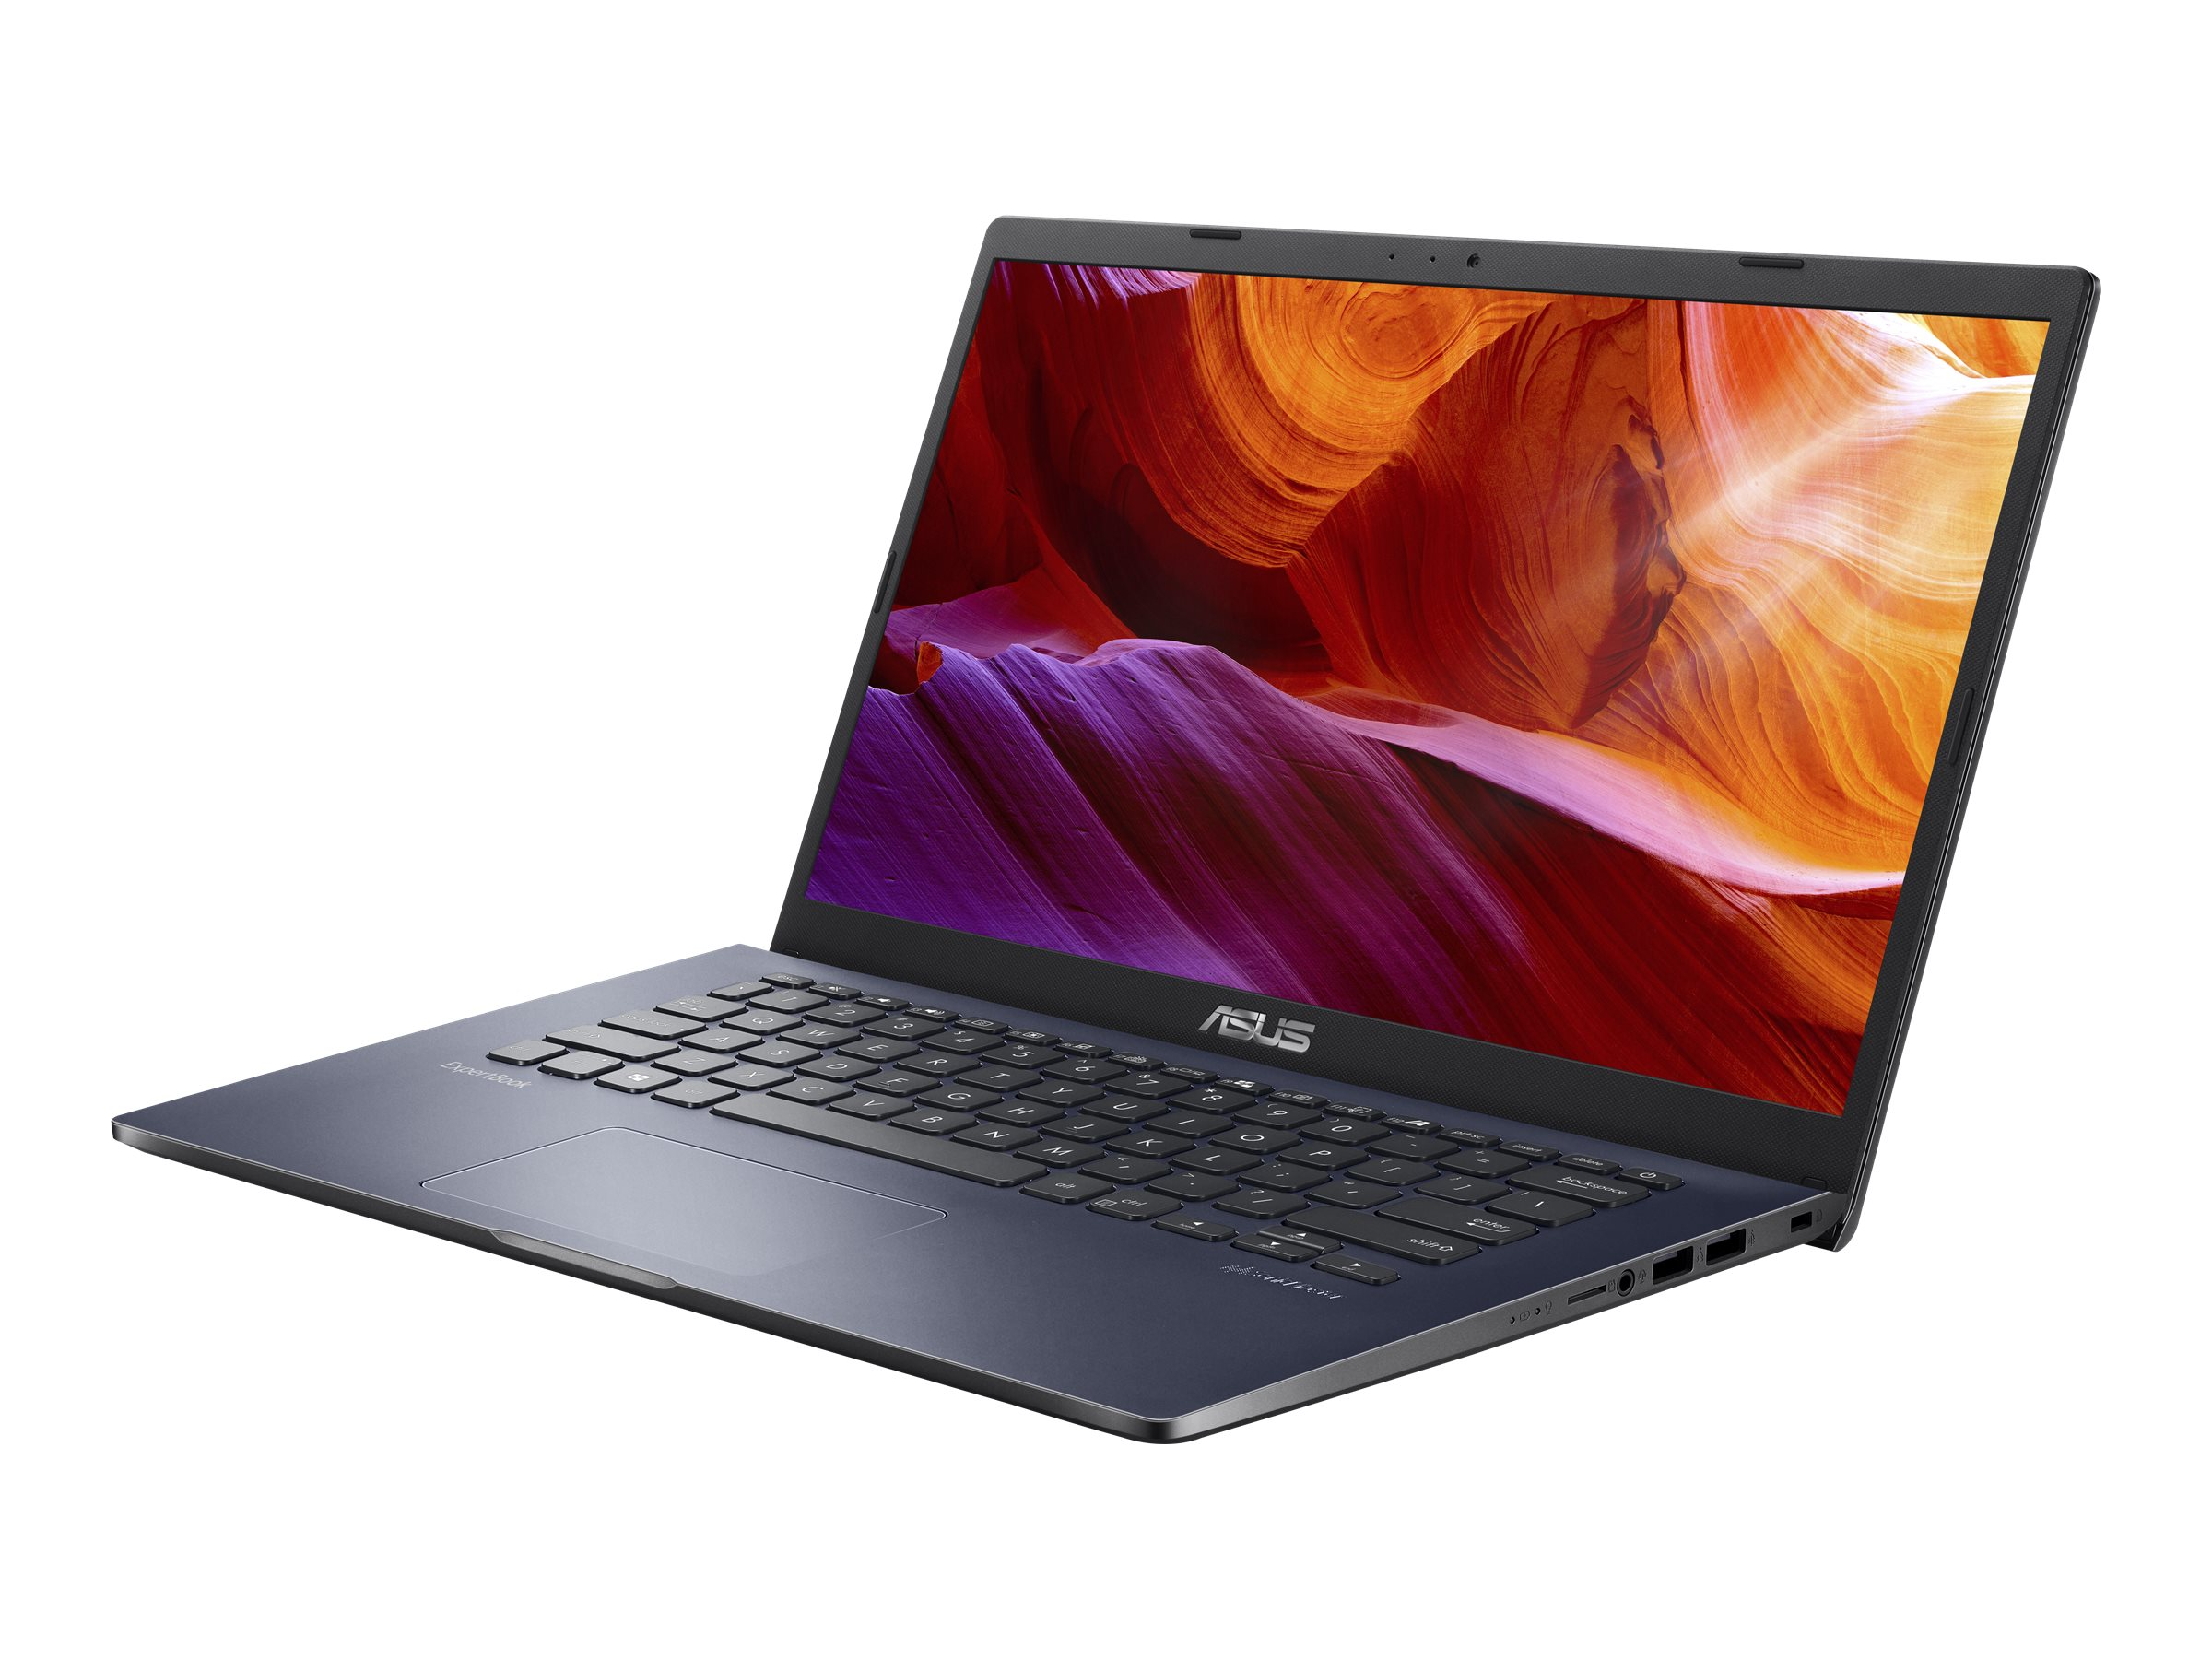 "ASUS ExpertBook P1 P1511CEA-BQ321R - Core i5 1135G7 / 2.4 GHz - Win 10 Pro - 8 GB RAM - 512 GB SSD NVMe - 39.6 cm (15.6"")"